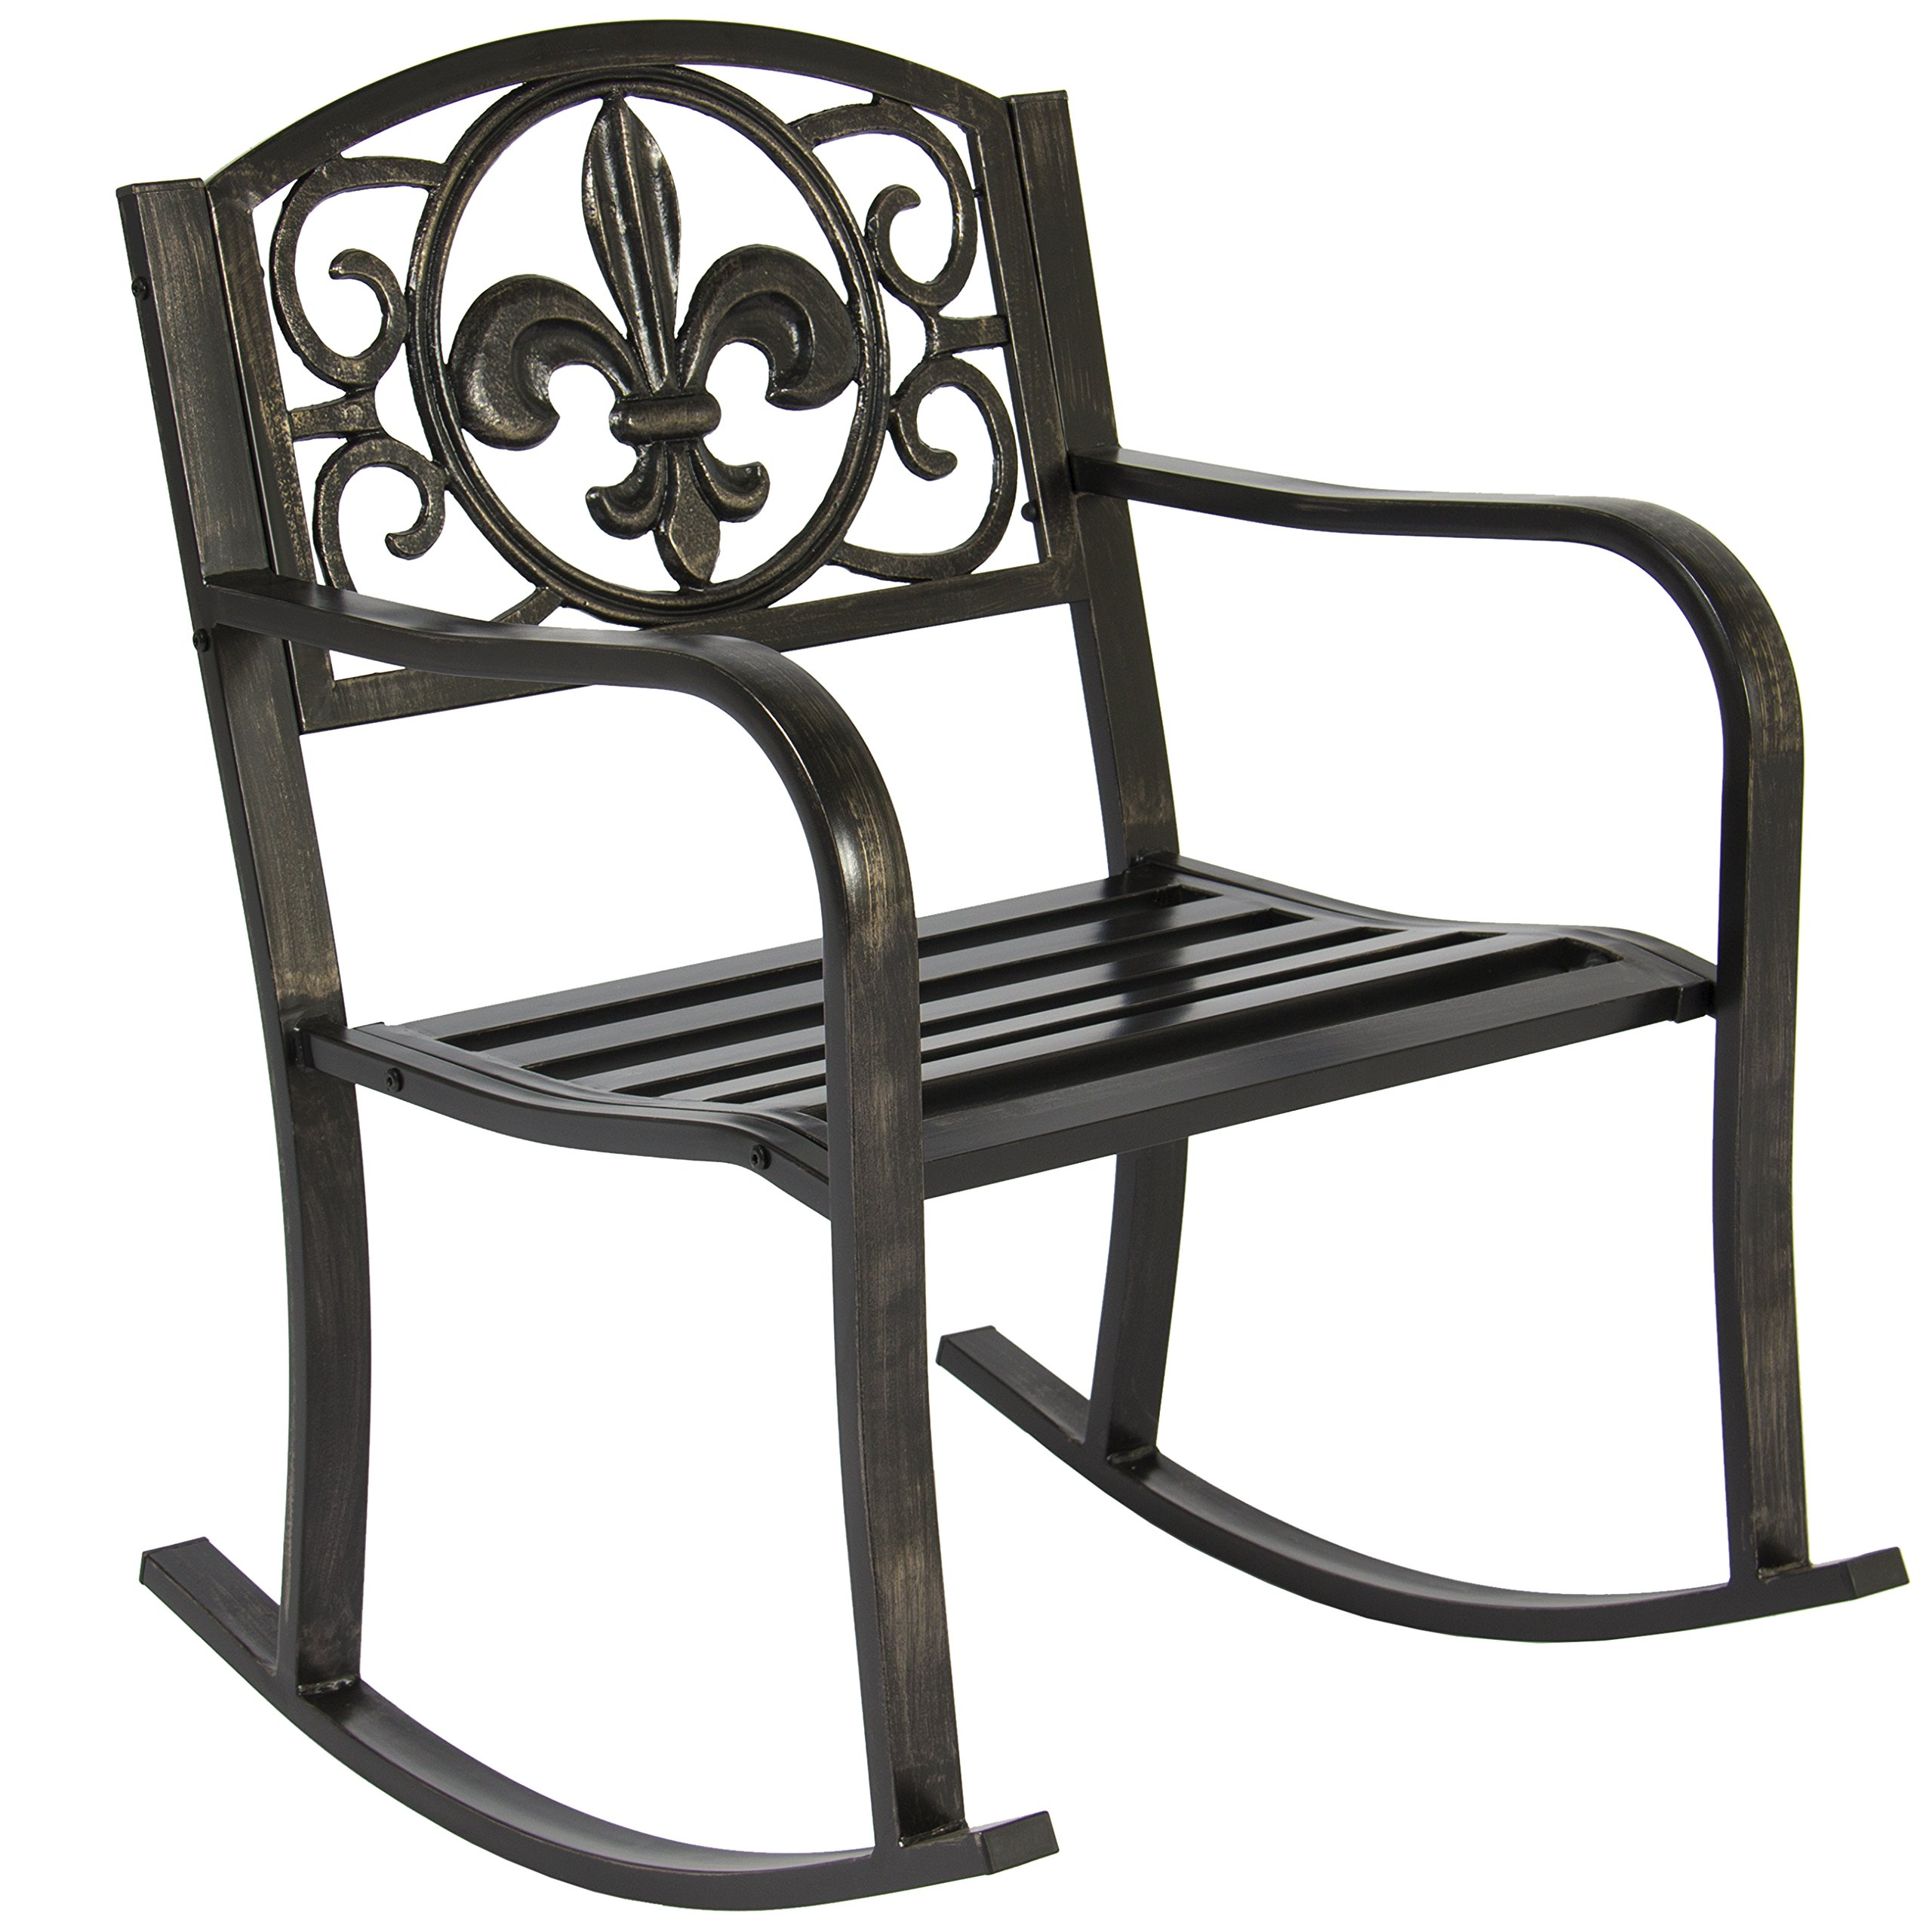 Best Choice Products Metal Rocking Chair Seat for Patio, Porch, Deck, Outdoor w/ Scroll Design - Black/Bronze by Best Choice Products